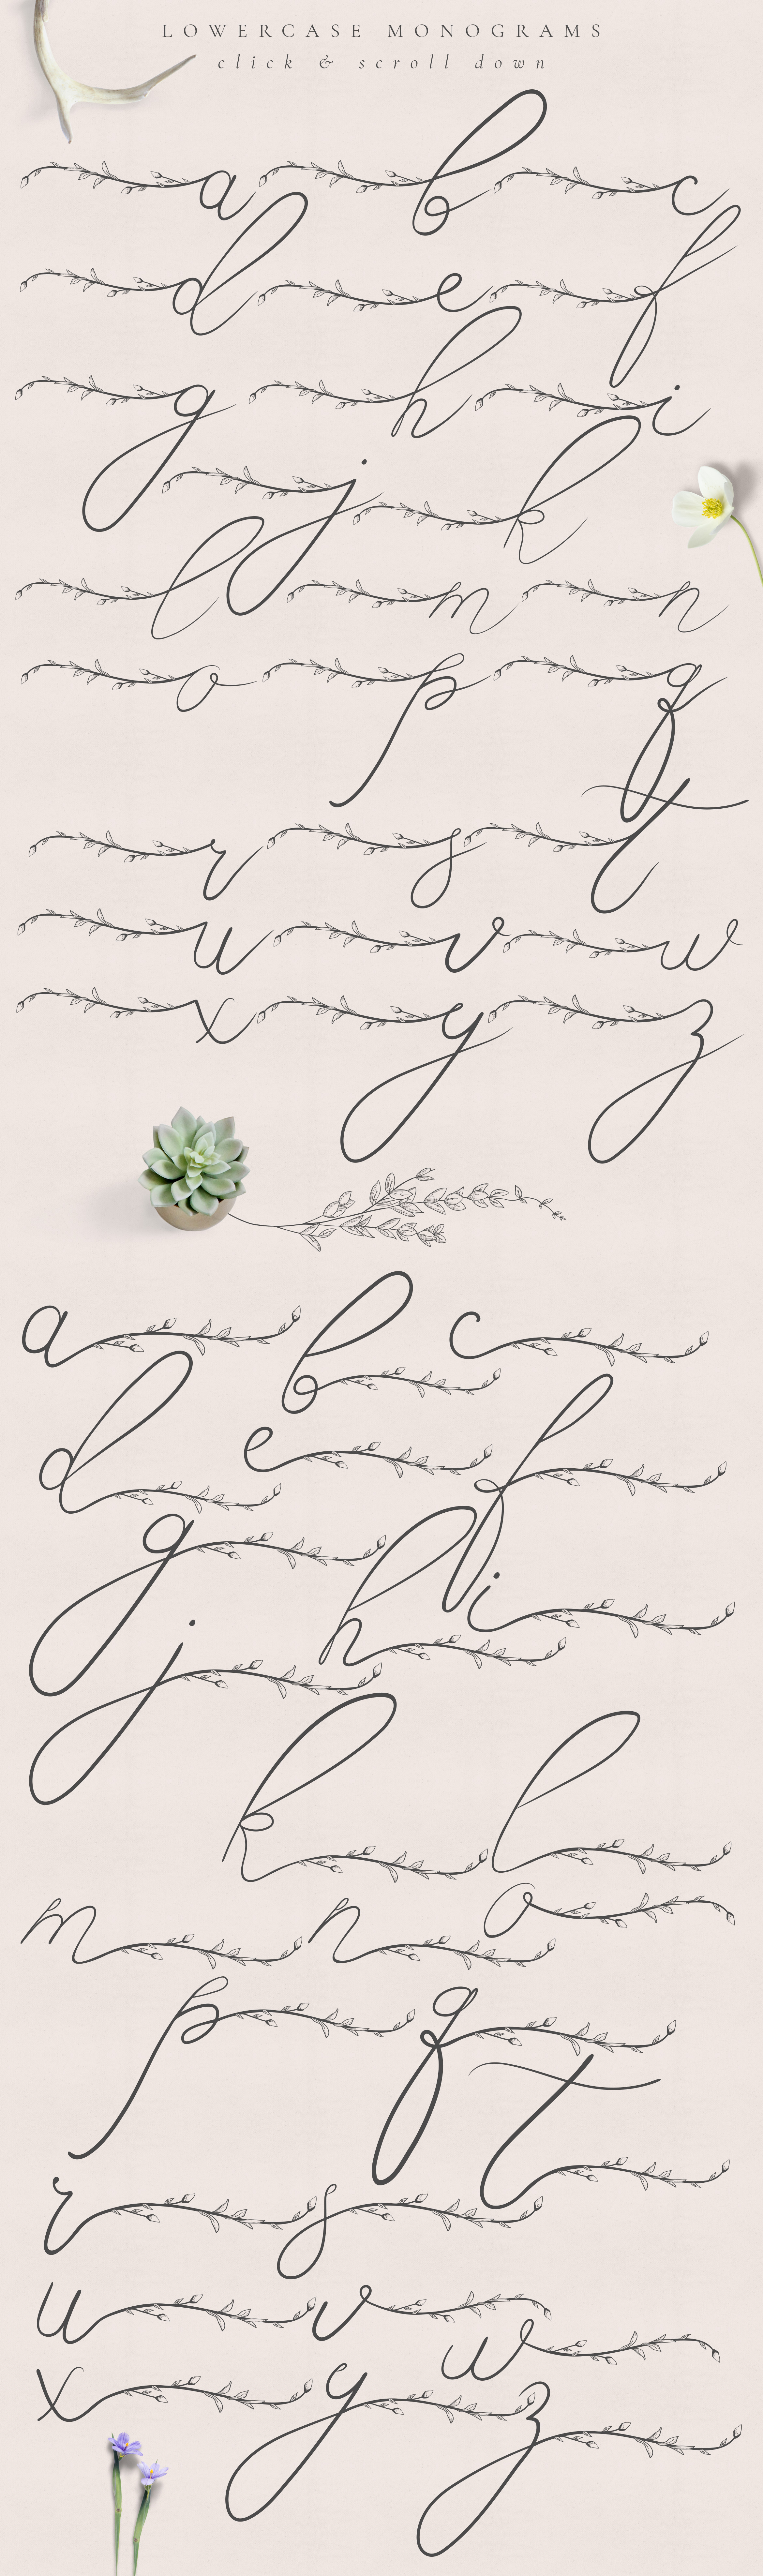 Flowered Monogram & Logo Collection example image 4